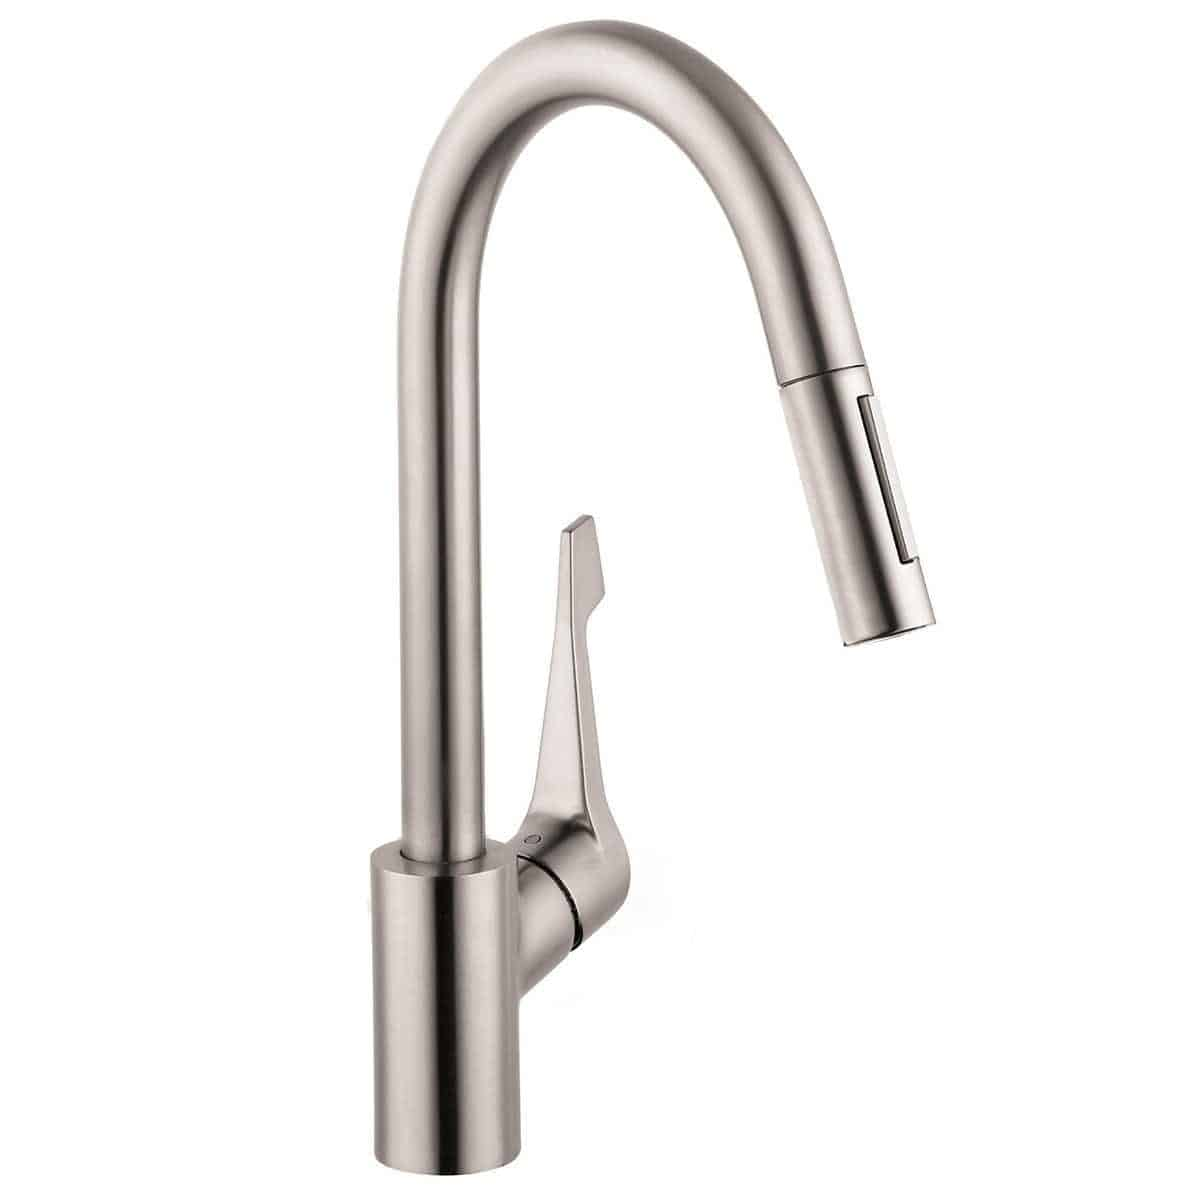 hansgrohe kitchen faucet upholstered chairs with casters cento thervgeeks